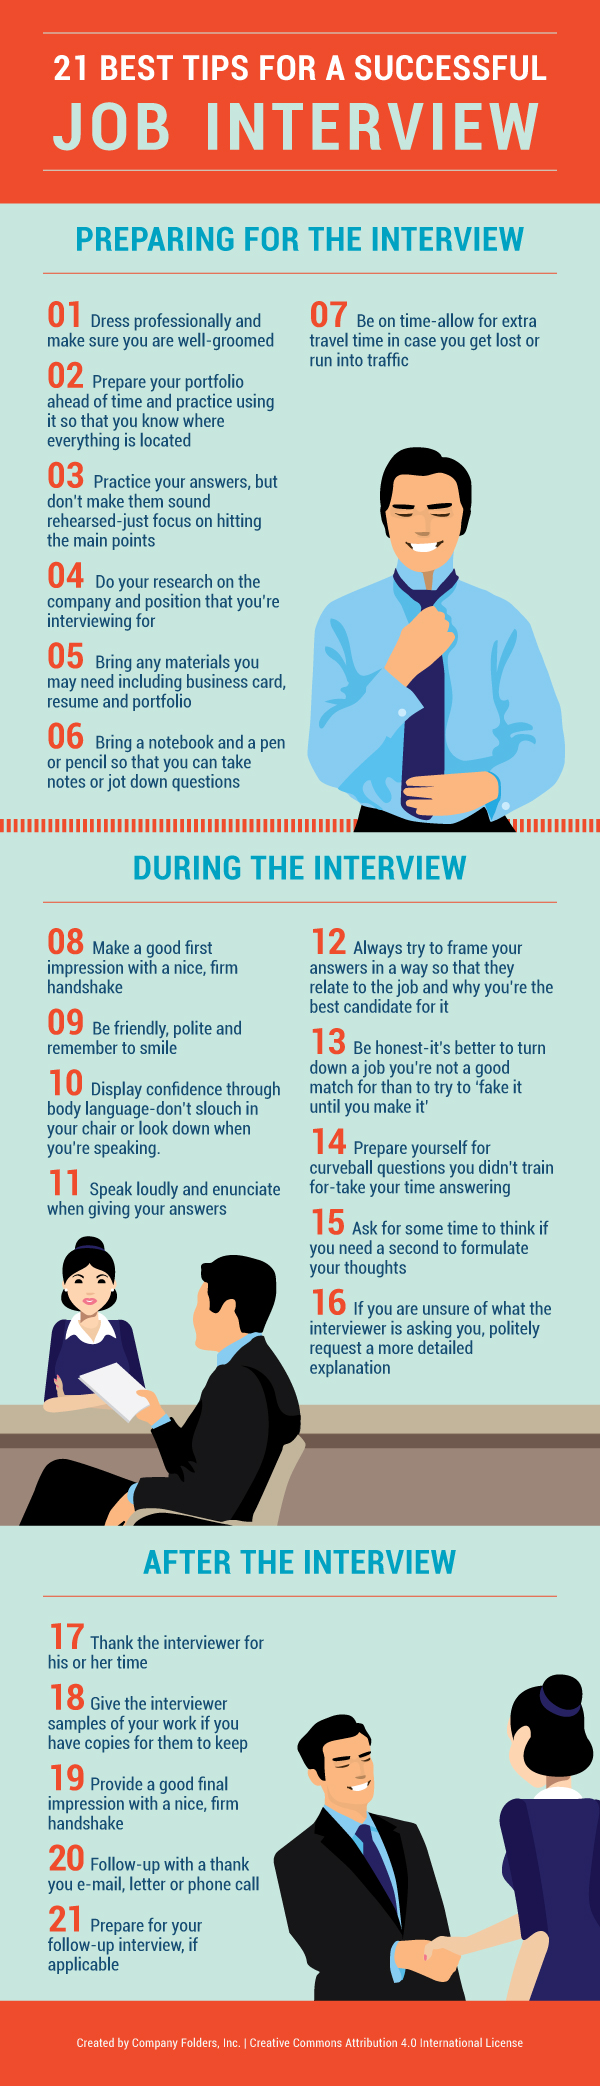 graphic design interview tips - The Best Job Interview Tips You Can Get